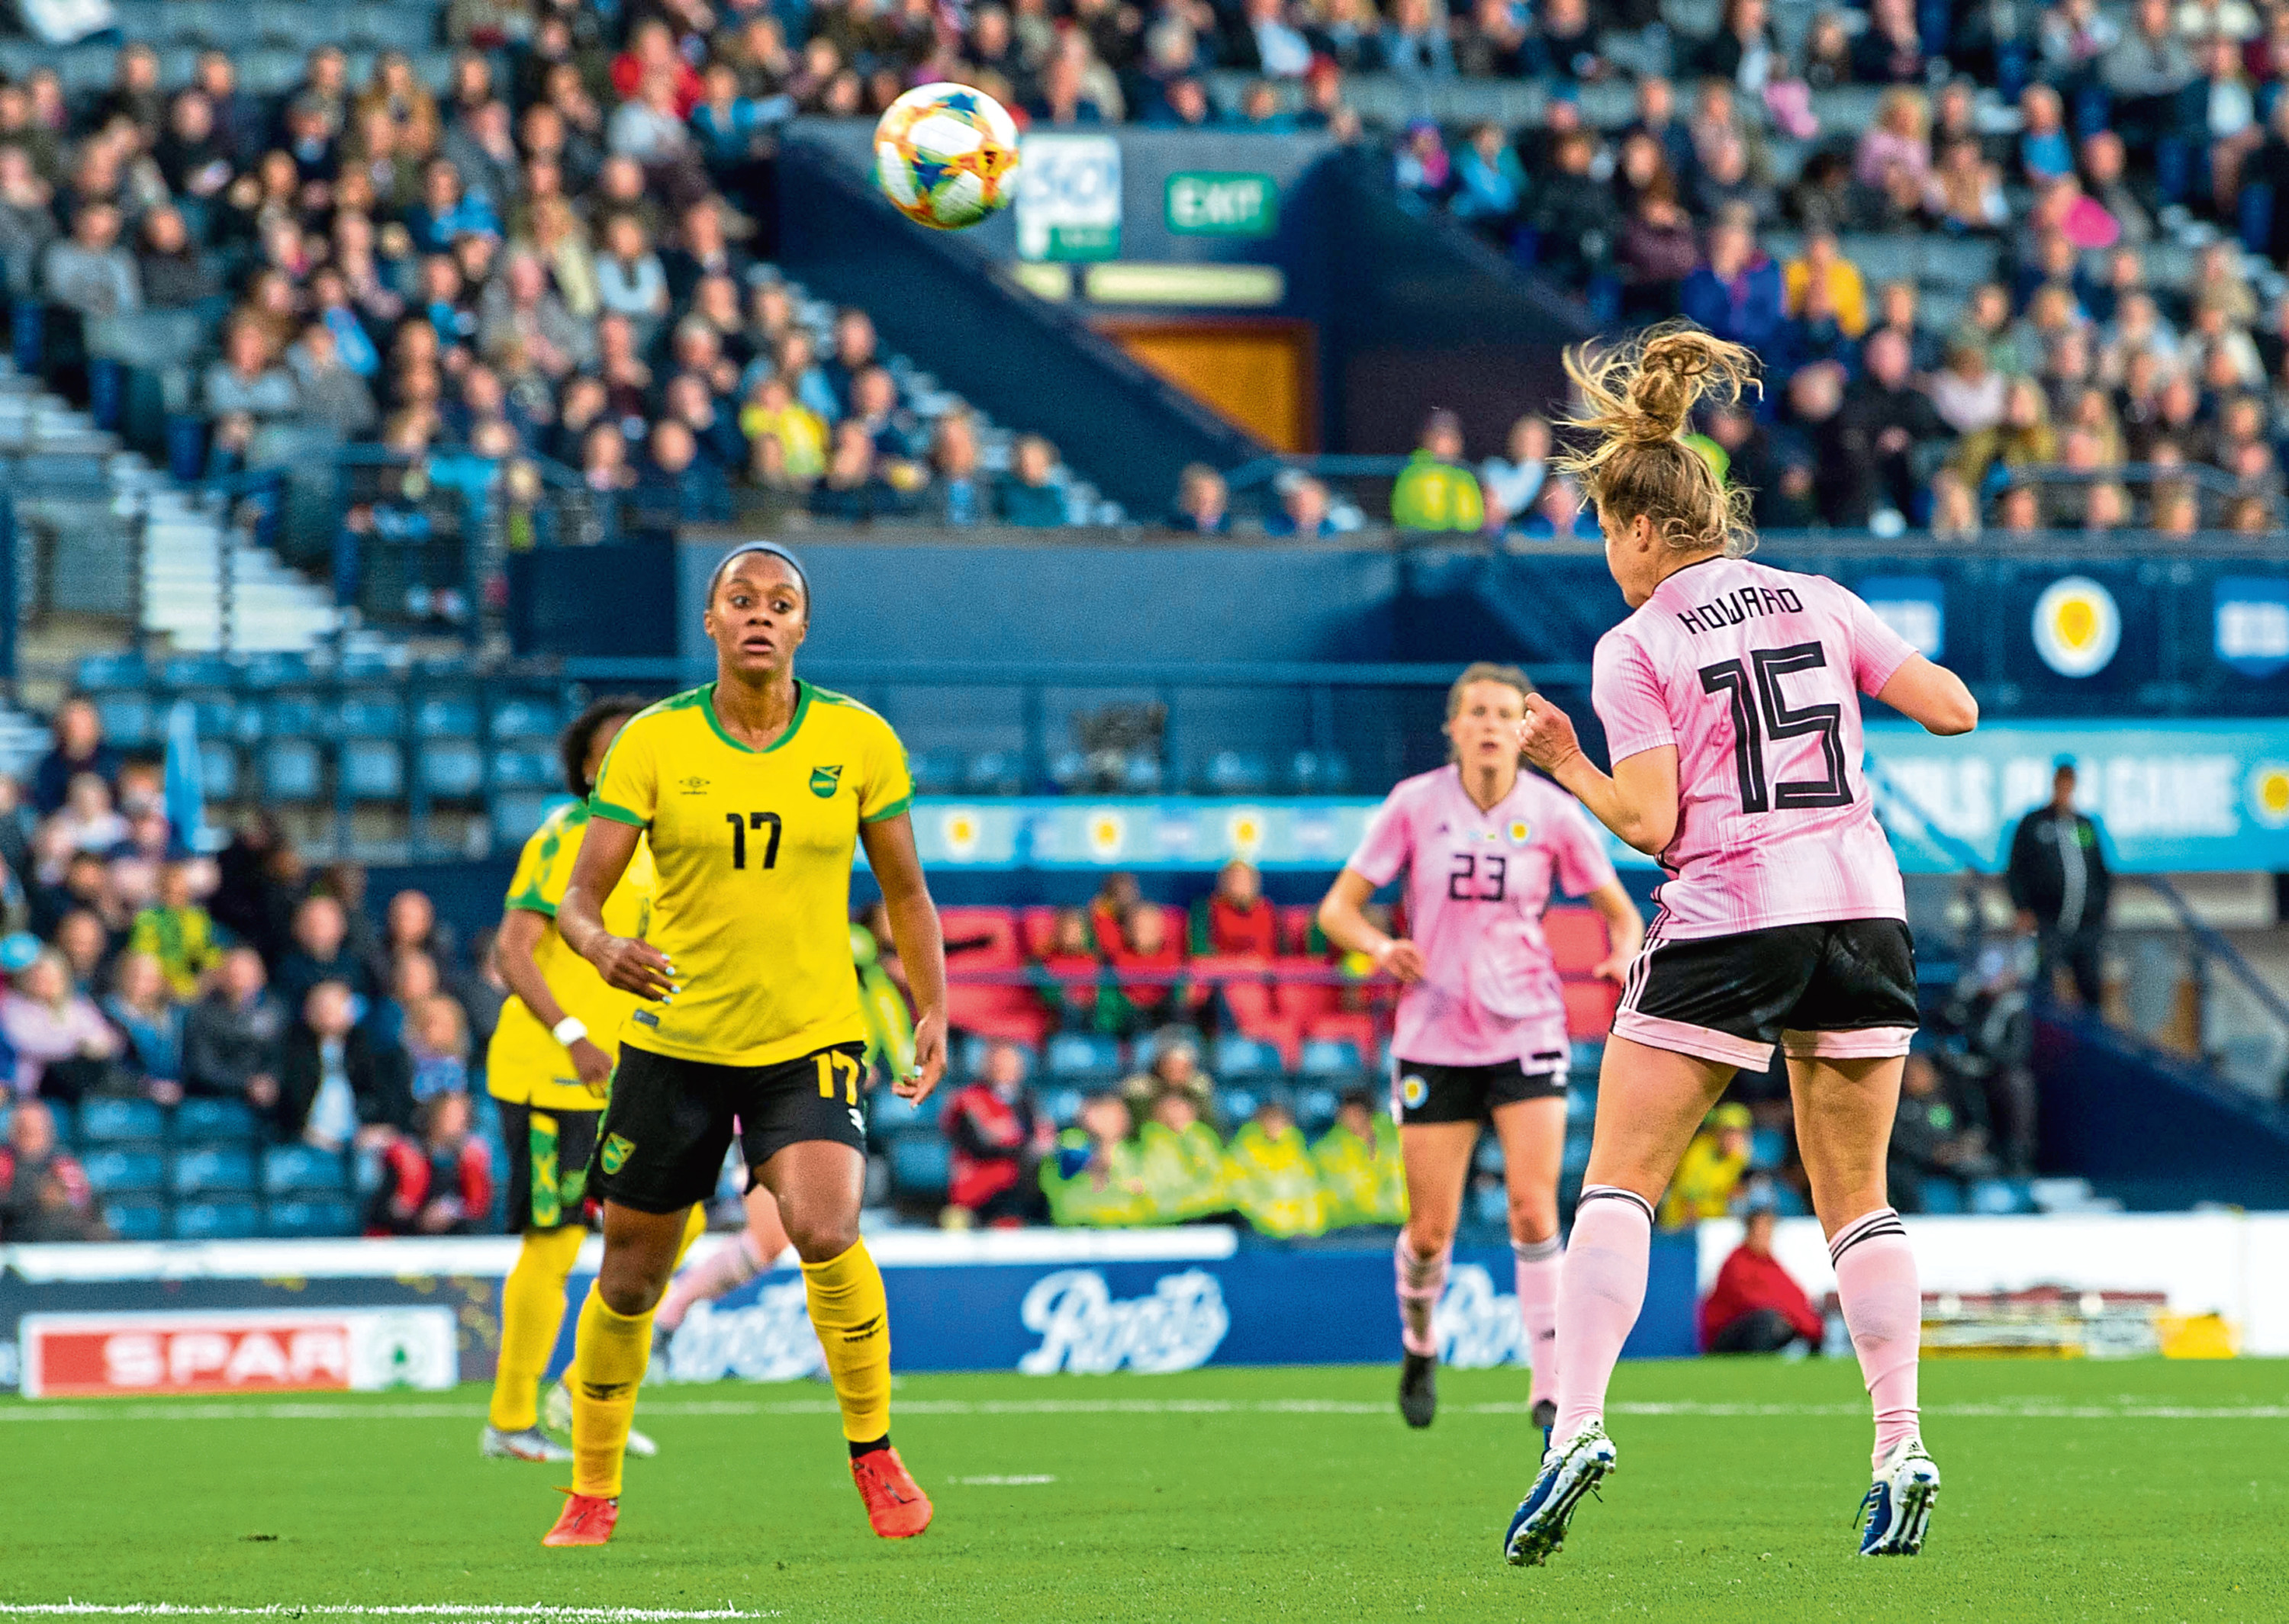 Scotland's Sophie Howard heads home to make it 3-2 in the recent game against Jamaica